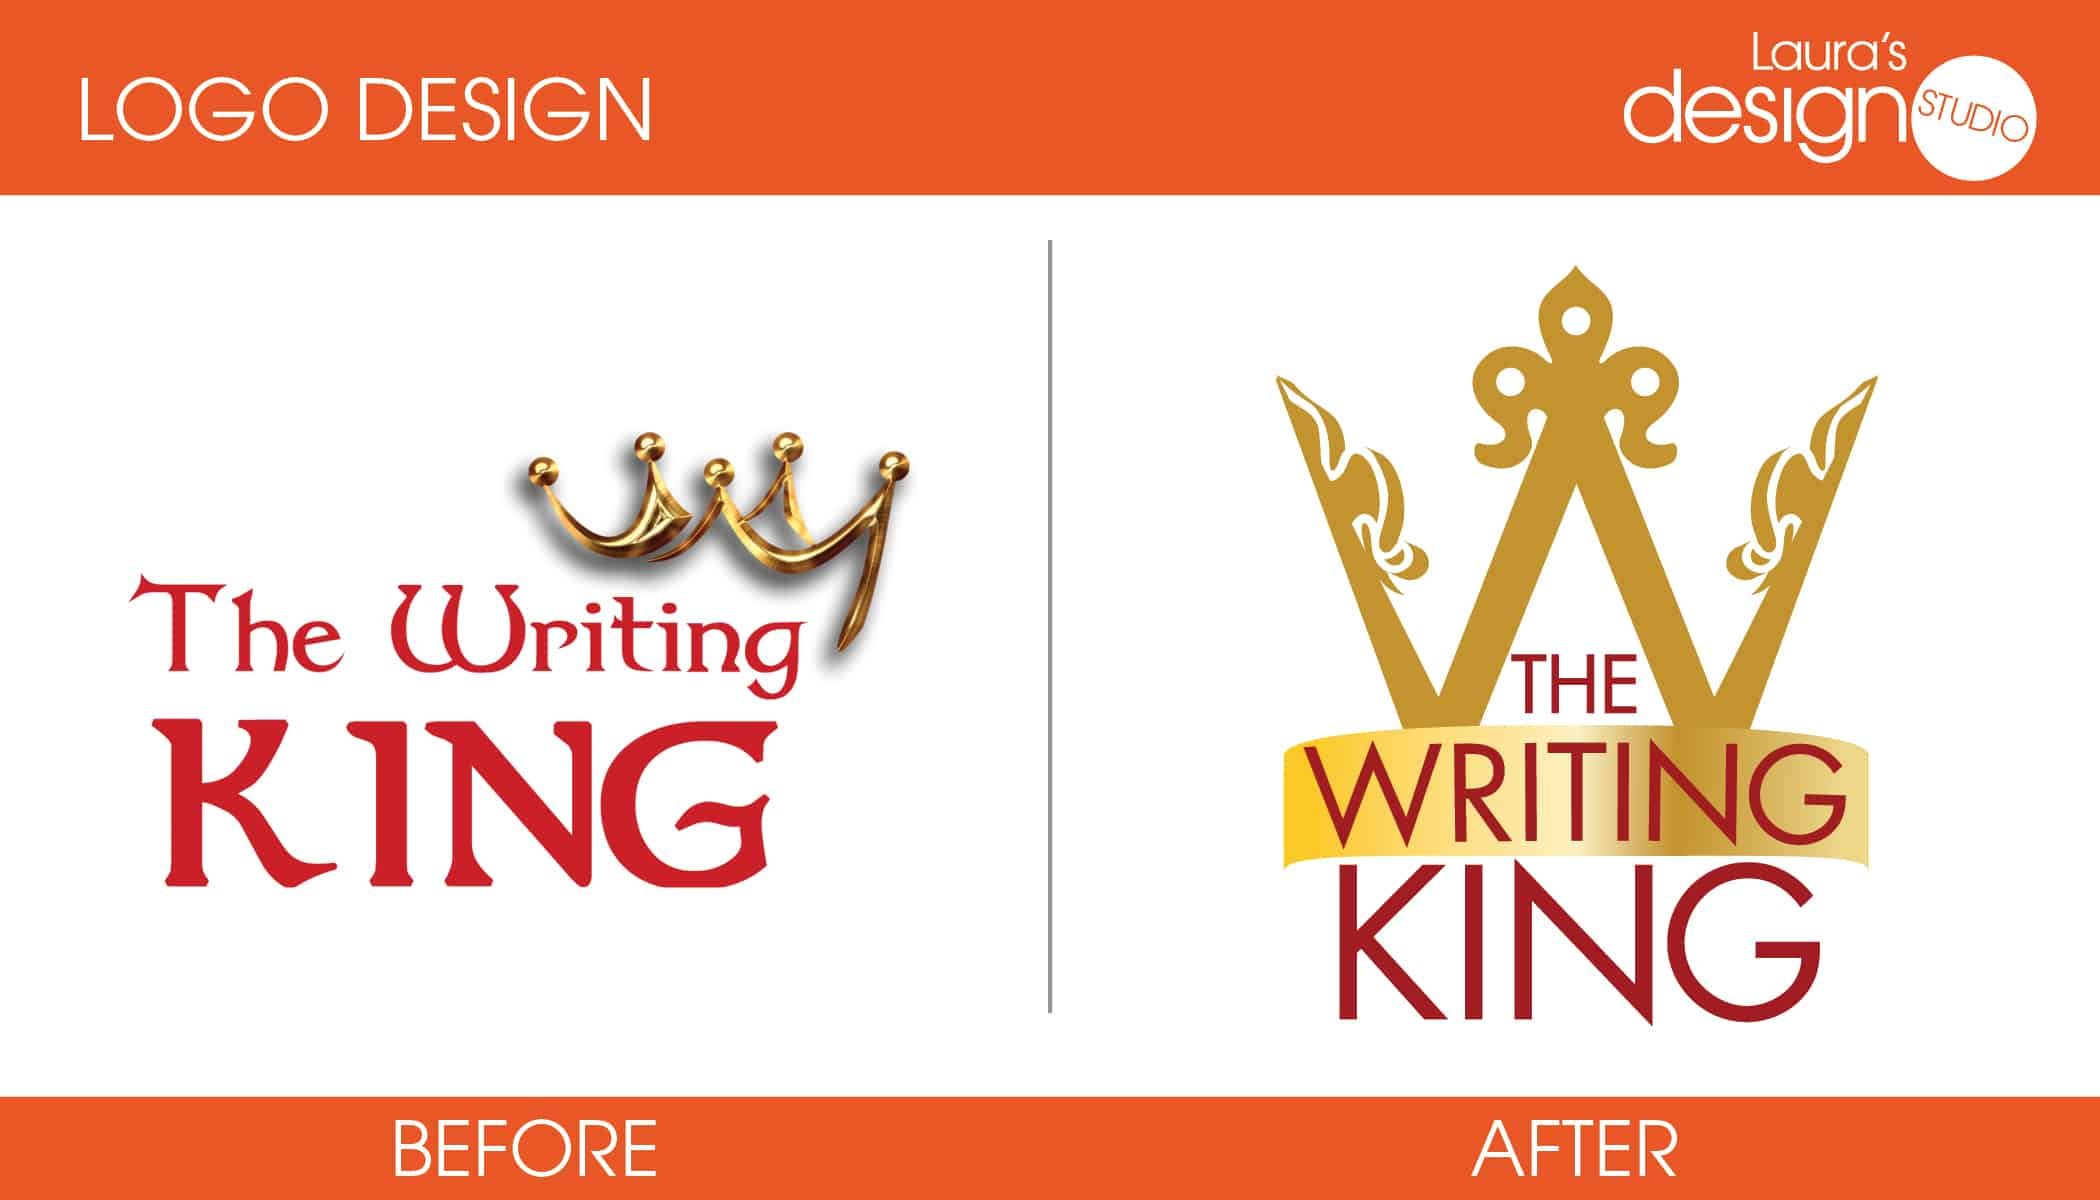 TheWritingKing-Before-After-Logo